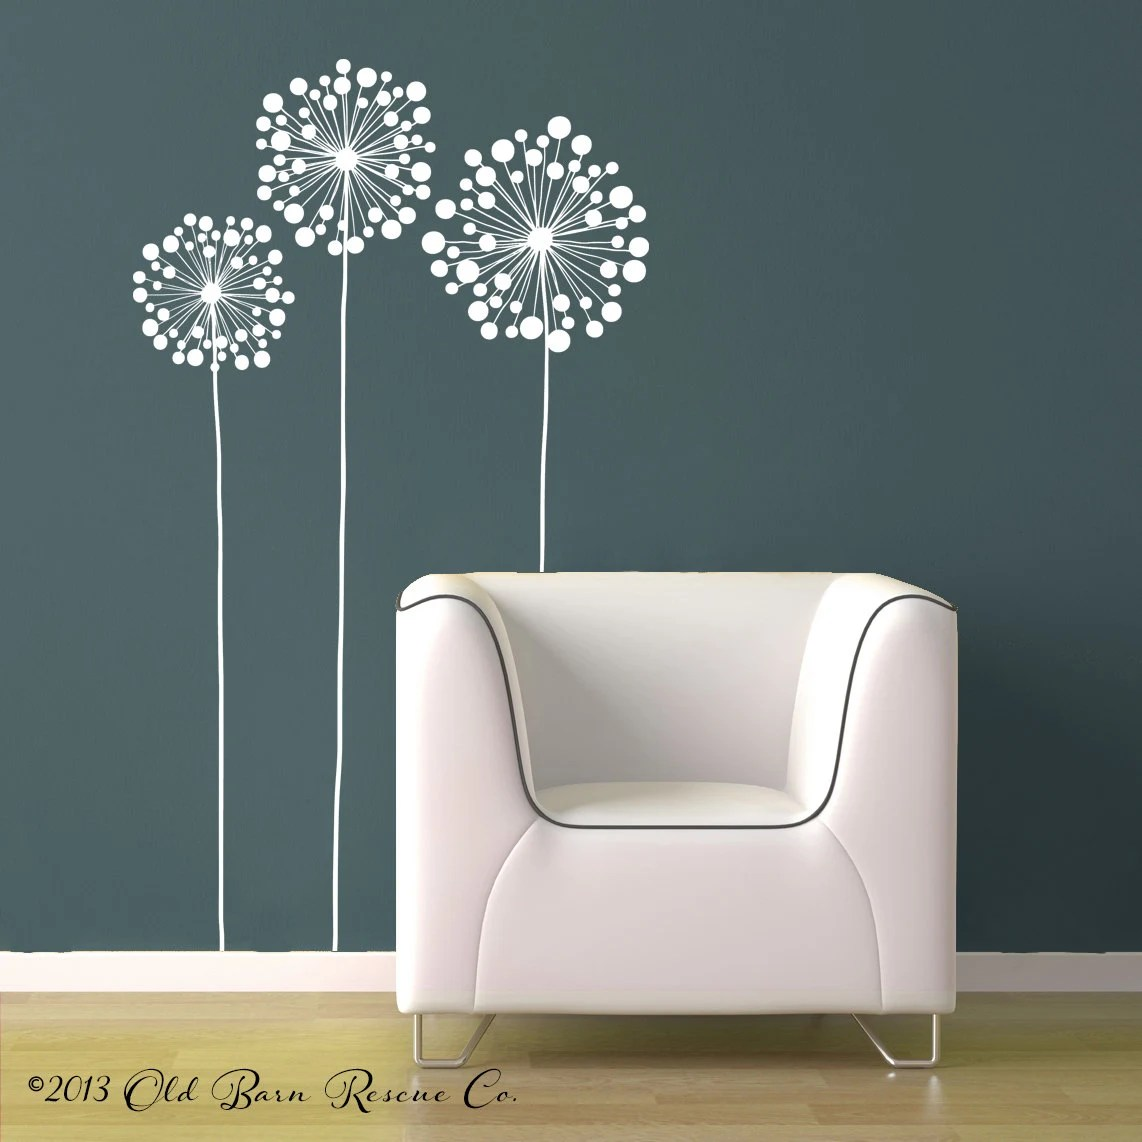 Floral Wall Decals